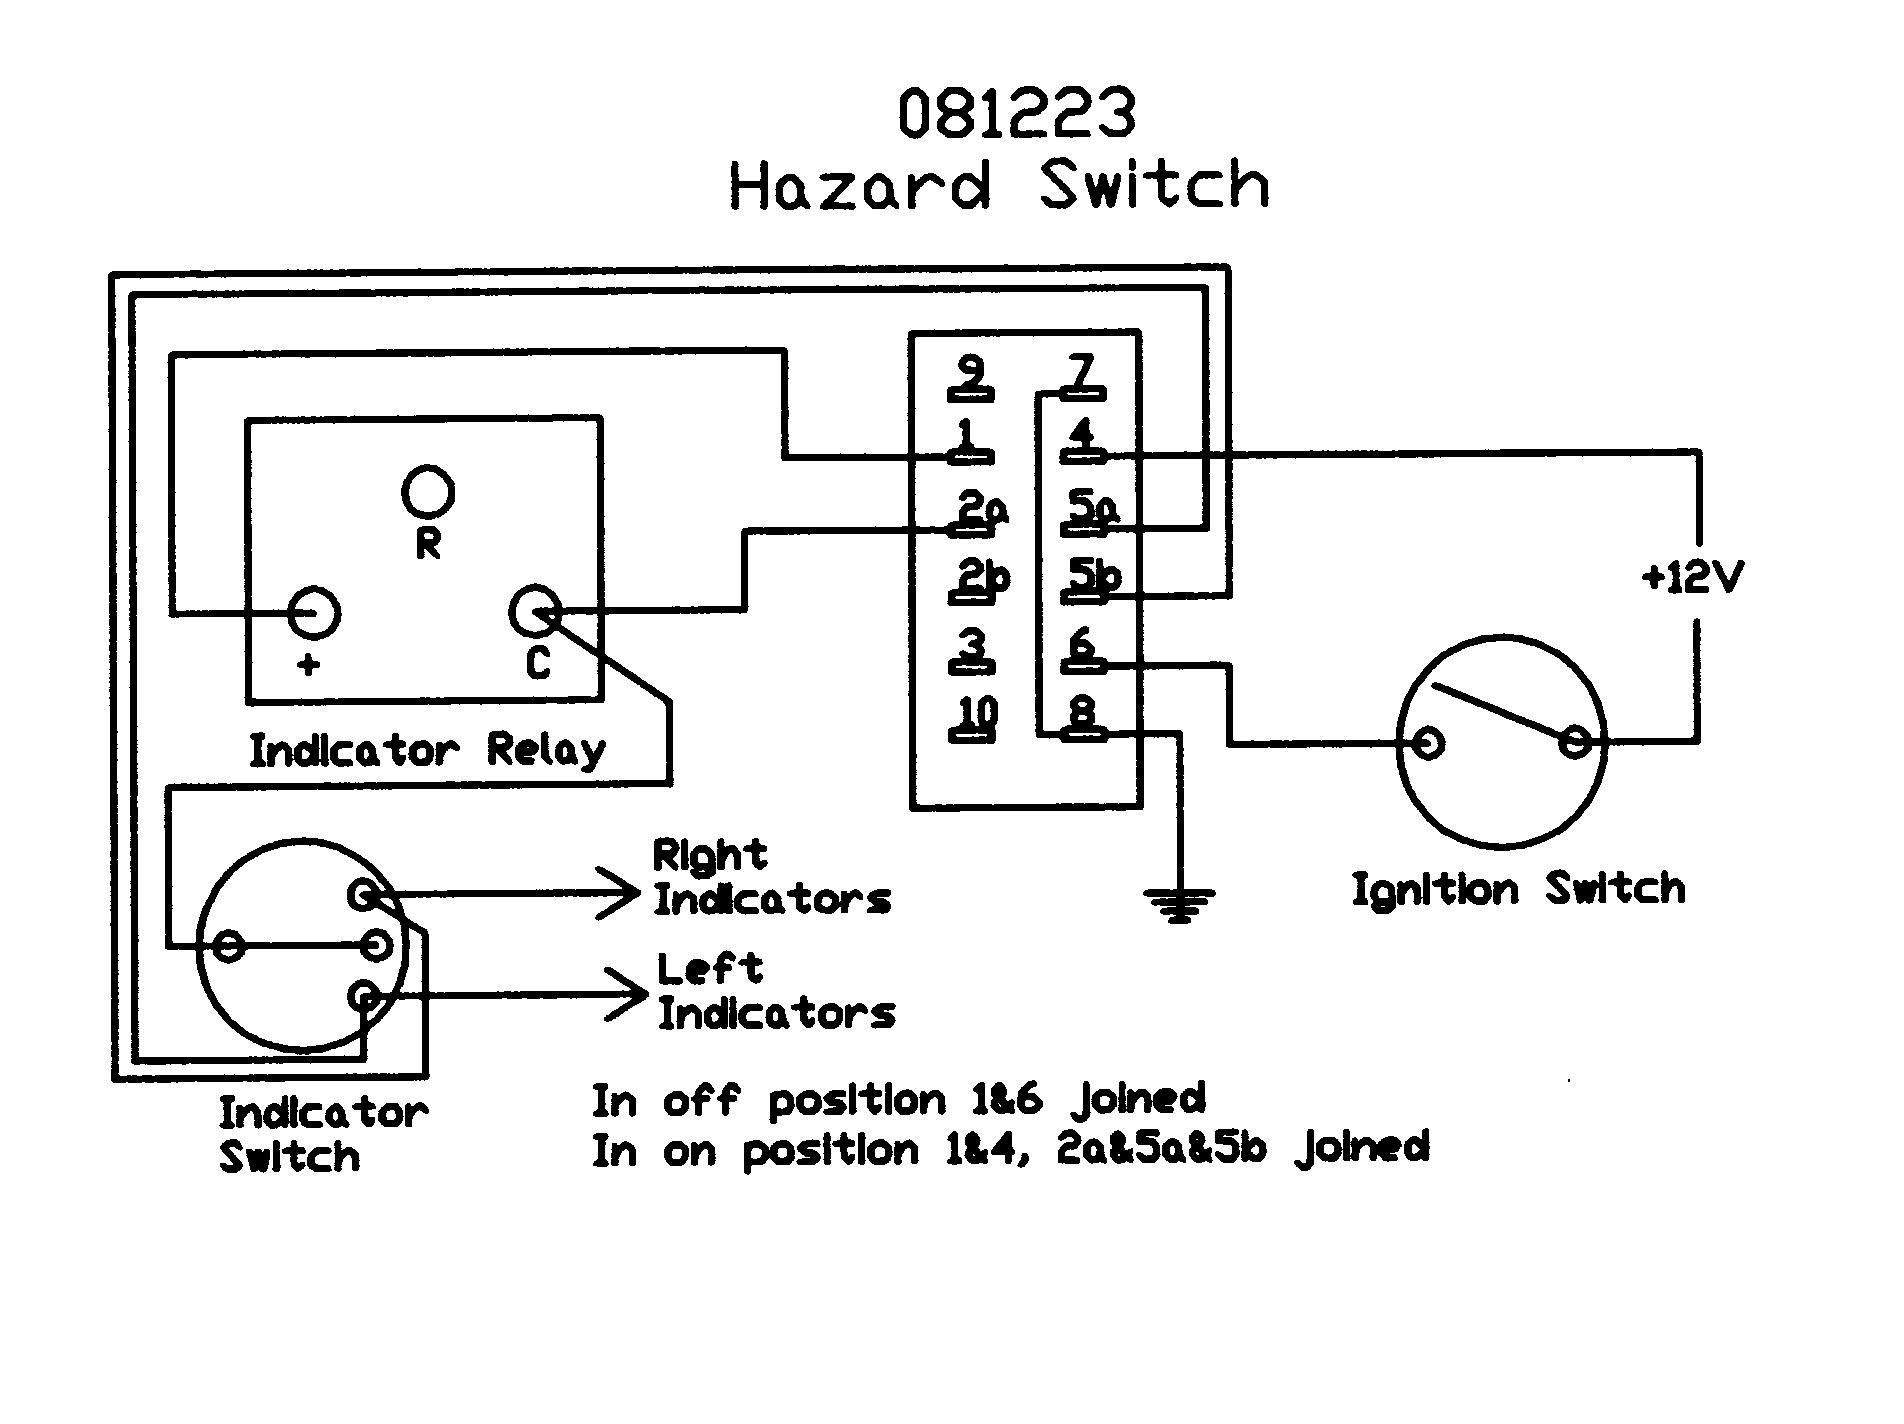 1993 Chevy Headlight Wiring Diagram Will Be A Thing S10 Rocker Hazard Switch Basic 93